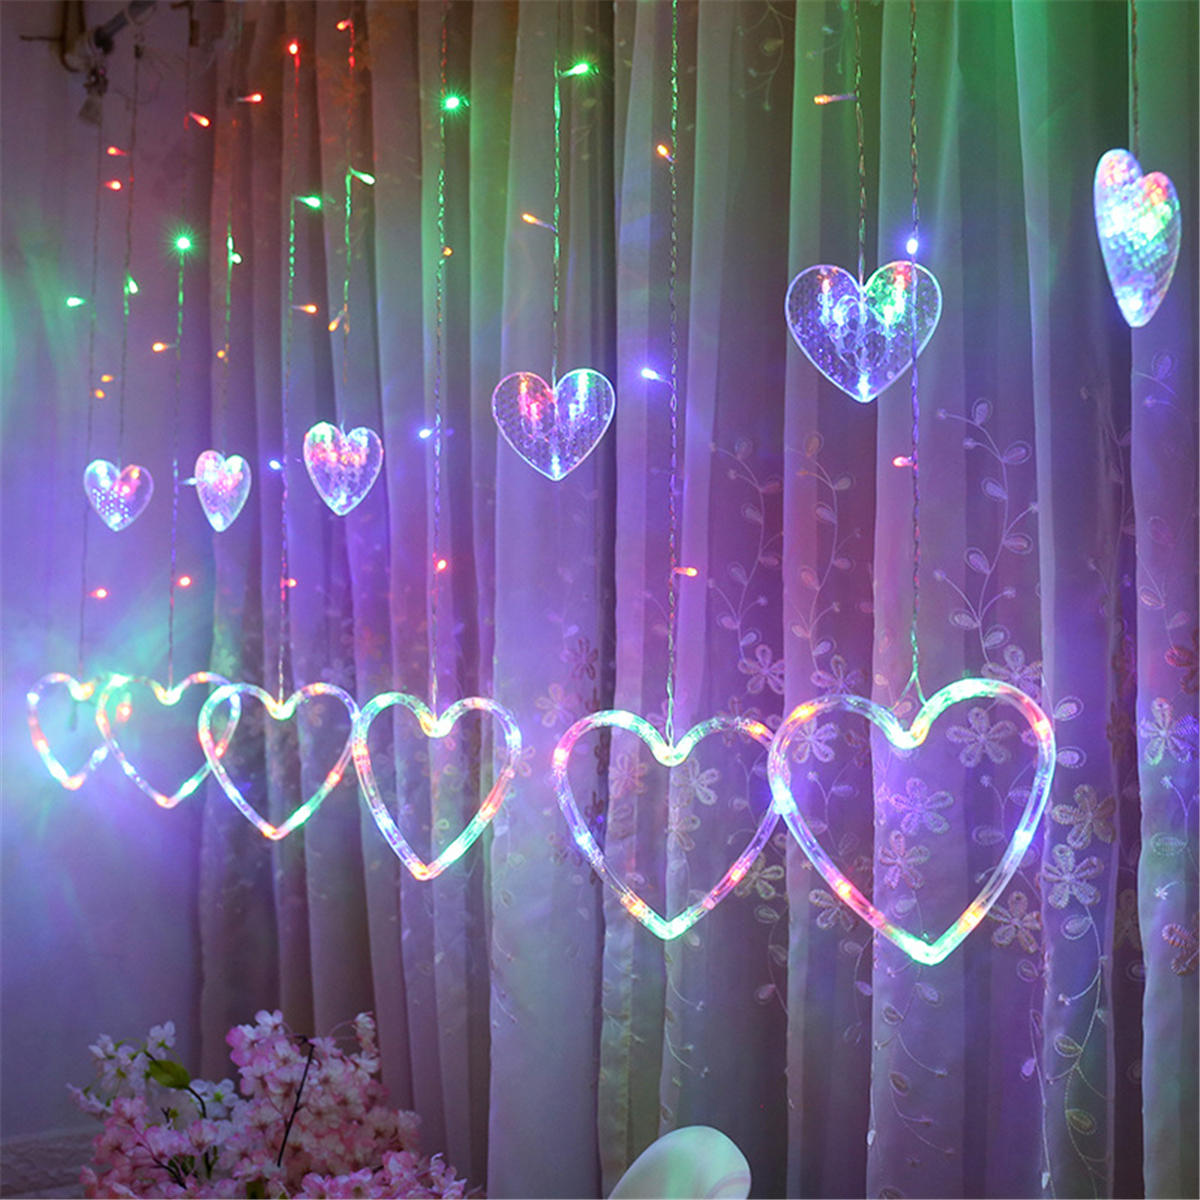 Window Curtain LED String Lights Christmas Led Wedding Valentine Day Party Fairy Decorations